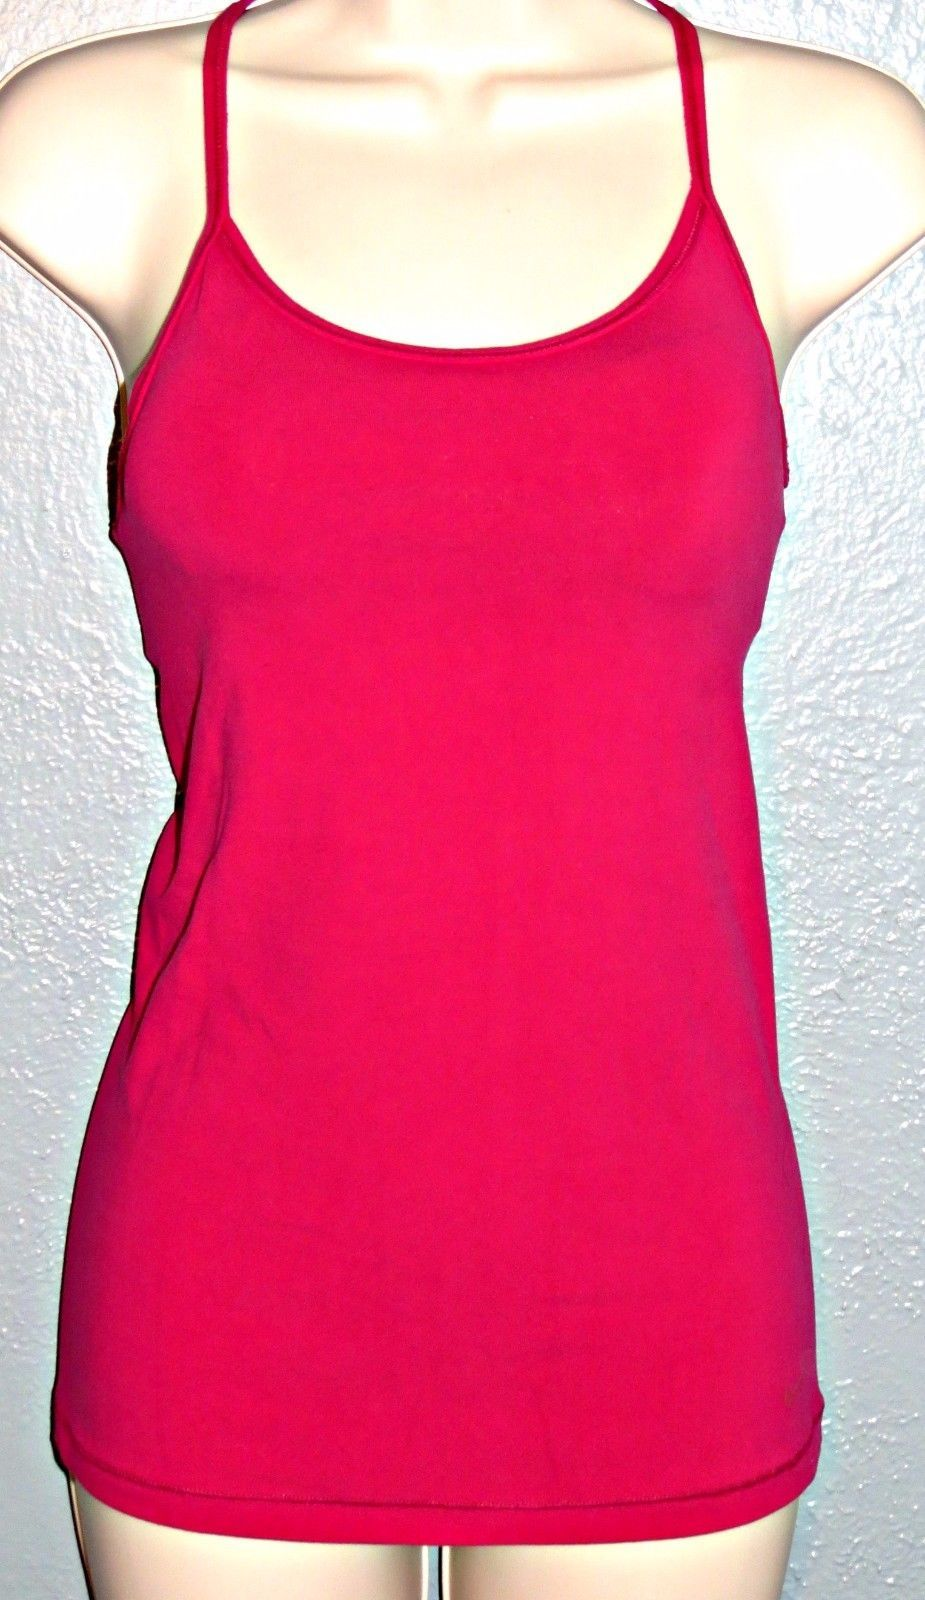 new style 570d9 0d37f NIKE DRI-FIT Women s XS Hot Pink Running and 50 similar items. S l1600